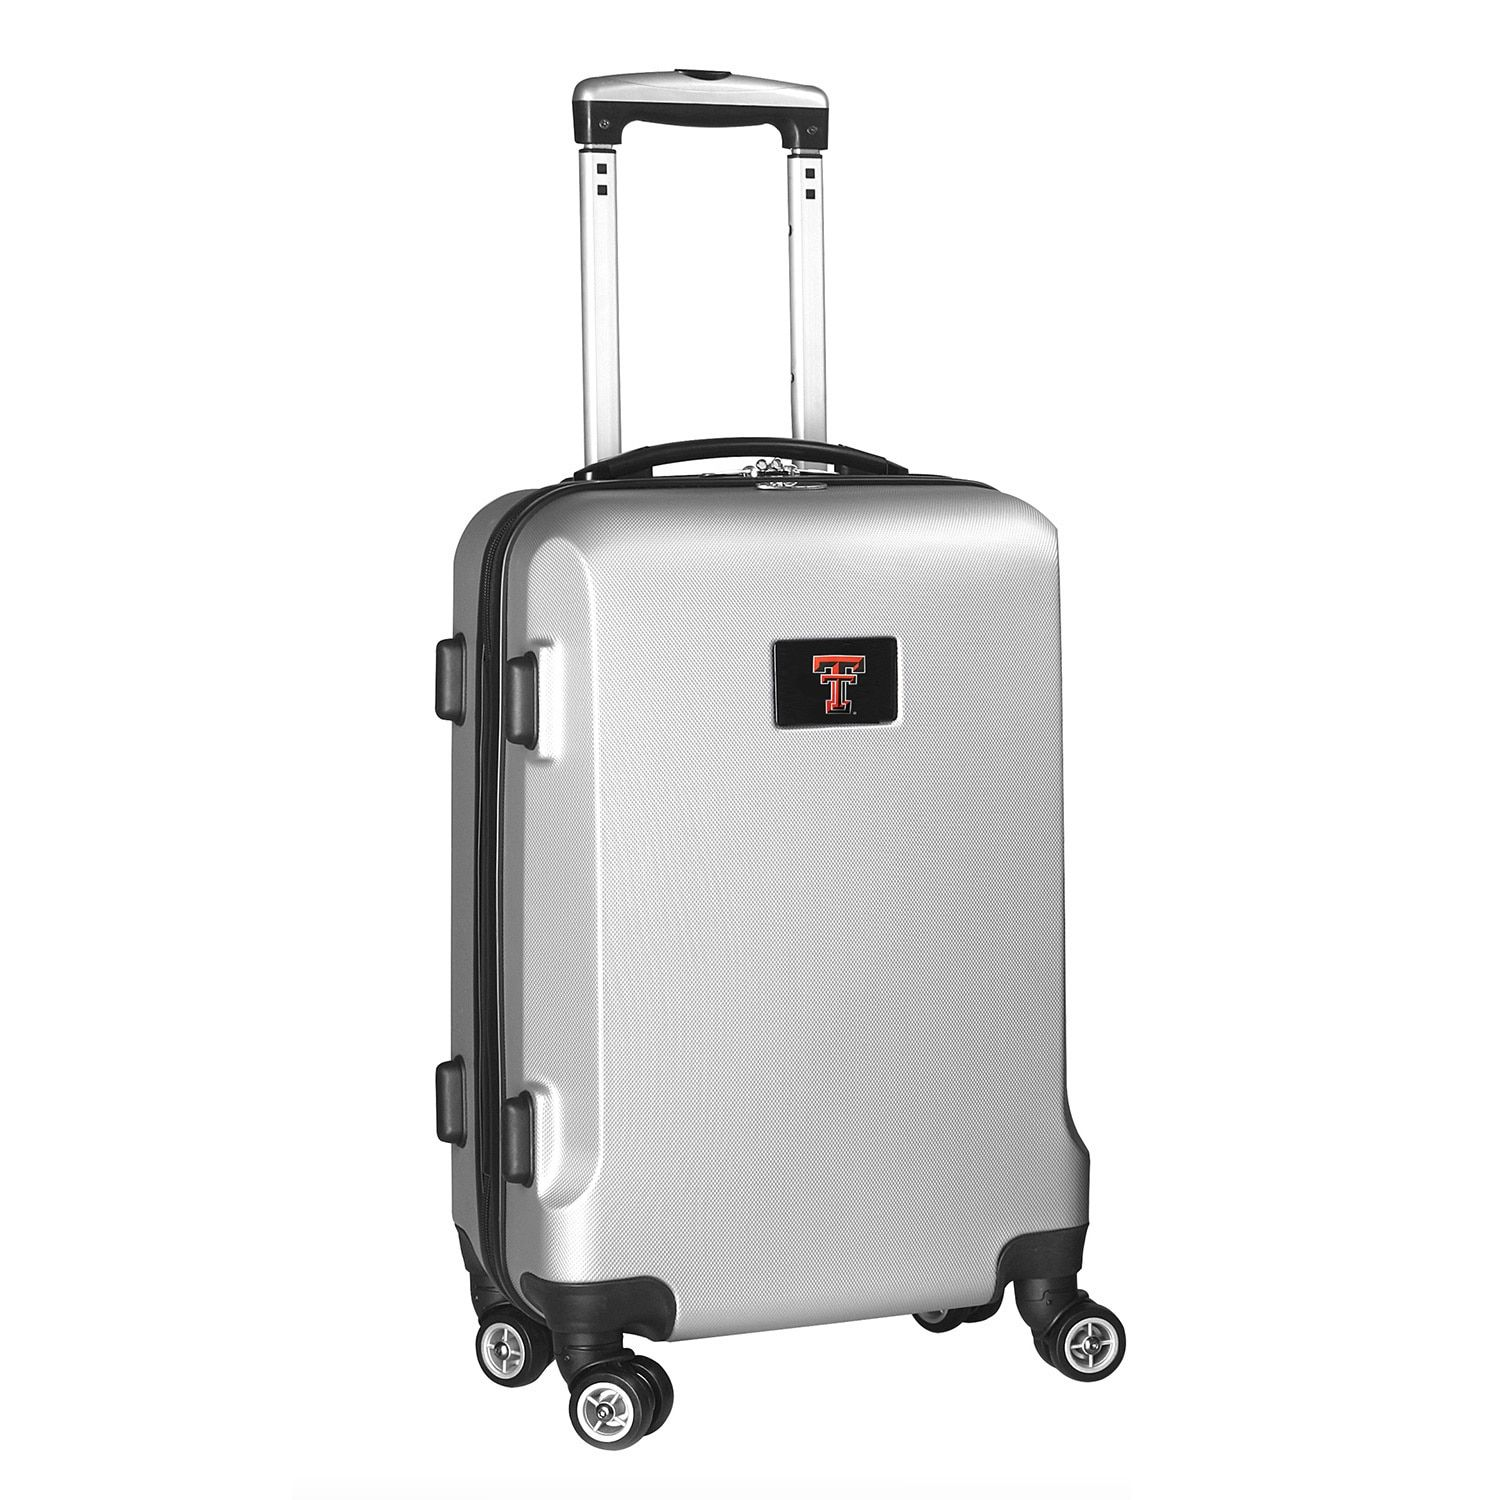 Denco Sports Ncaa Texas Tech Red Raiders 20-inch Hardside Carry-on Spinner Upright Suitcase